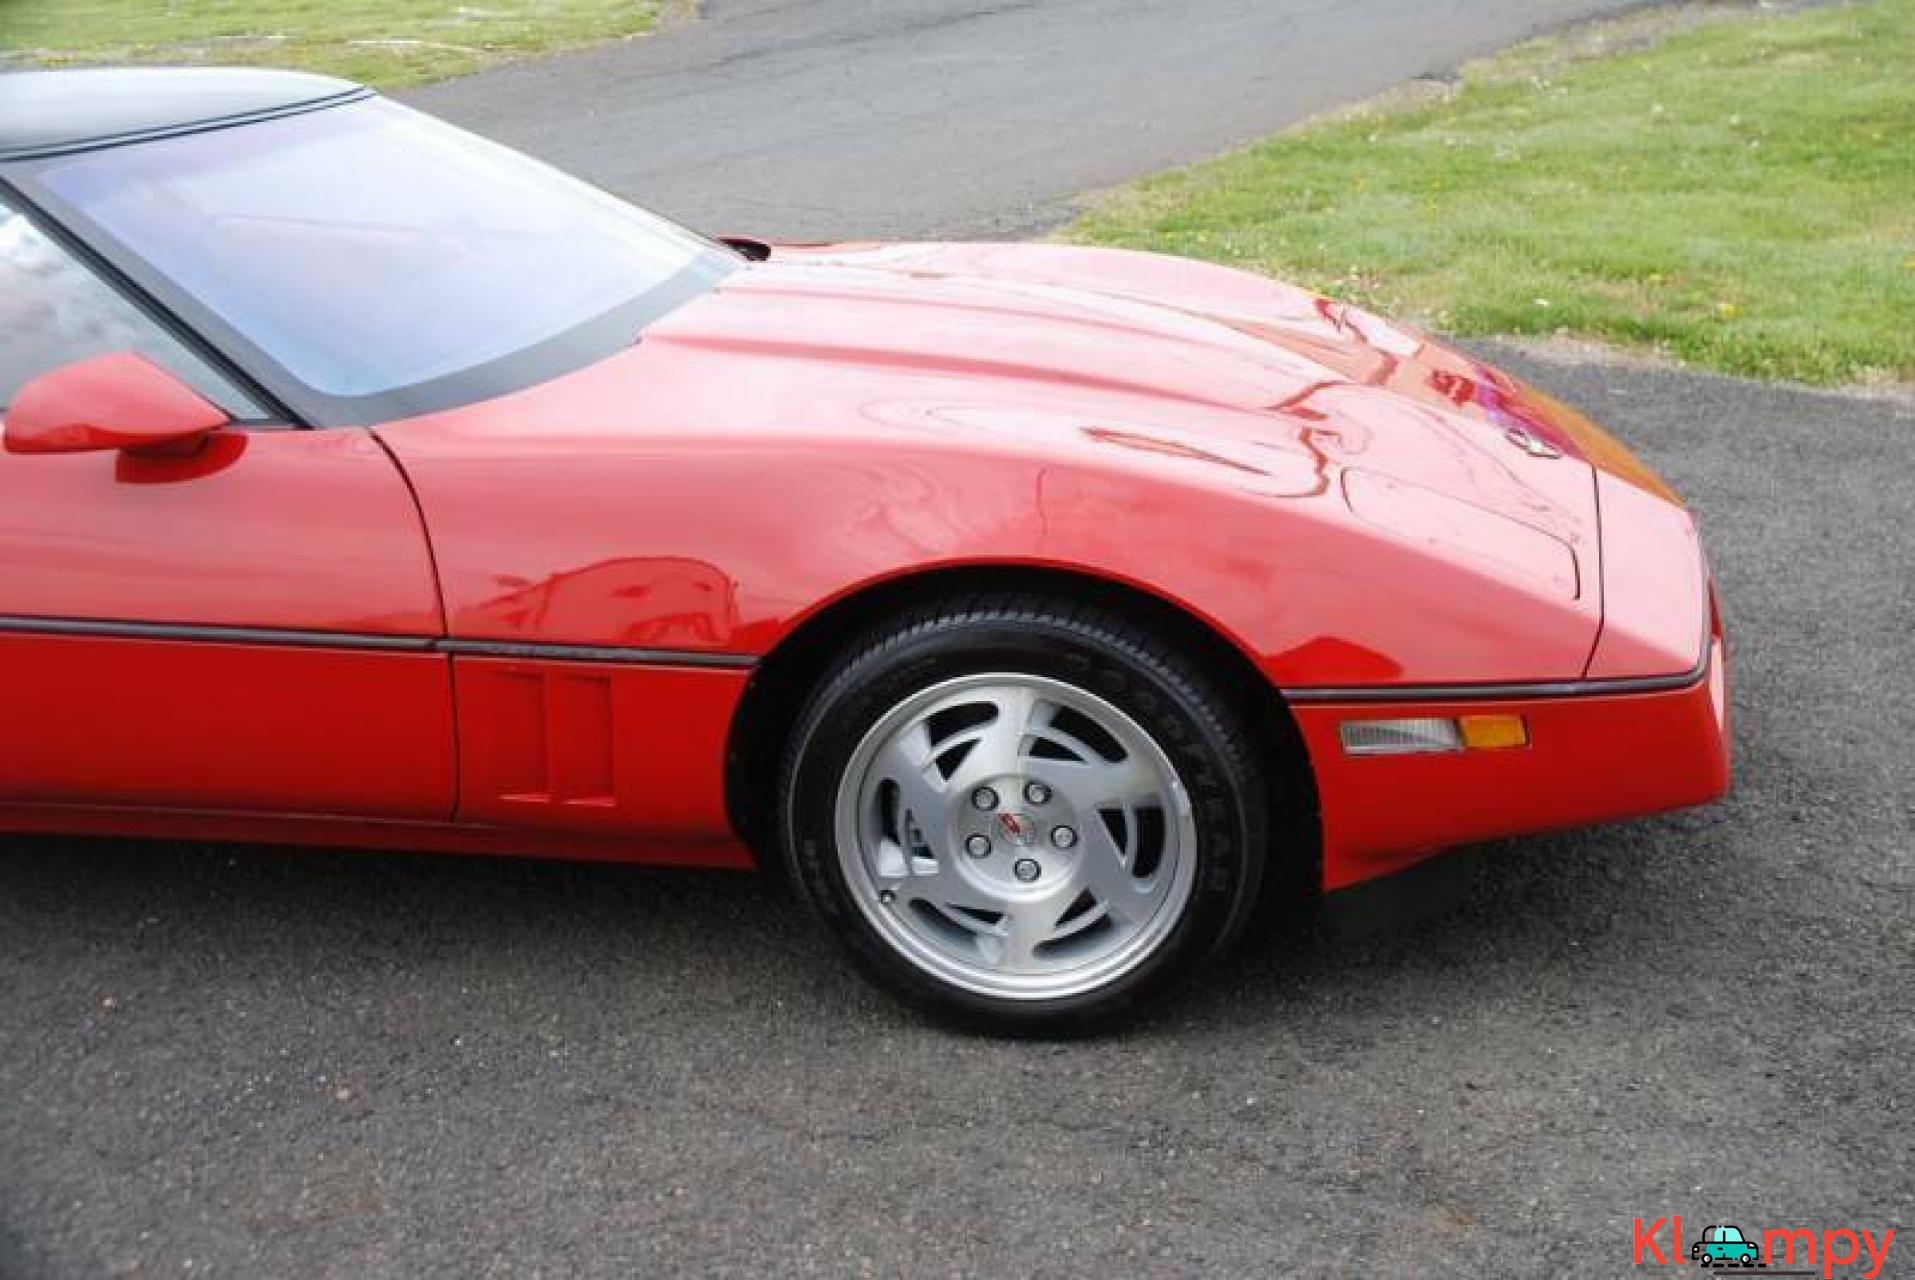 1990 Chevrolet Corvette ZR1 5.7L - 10/20